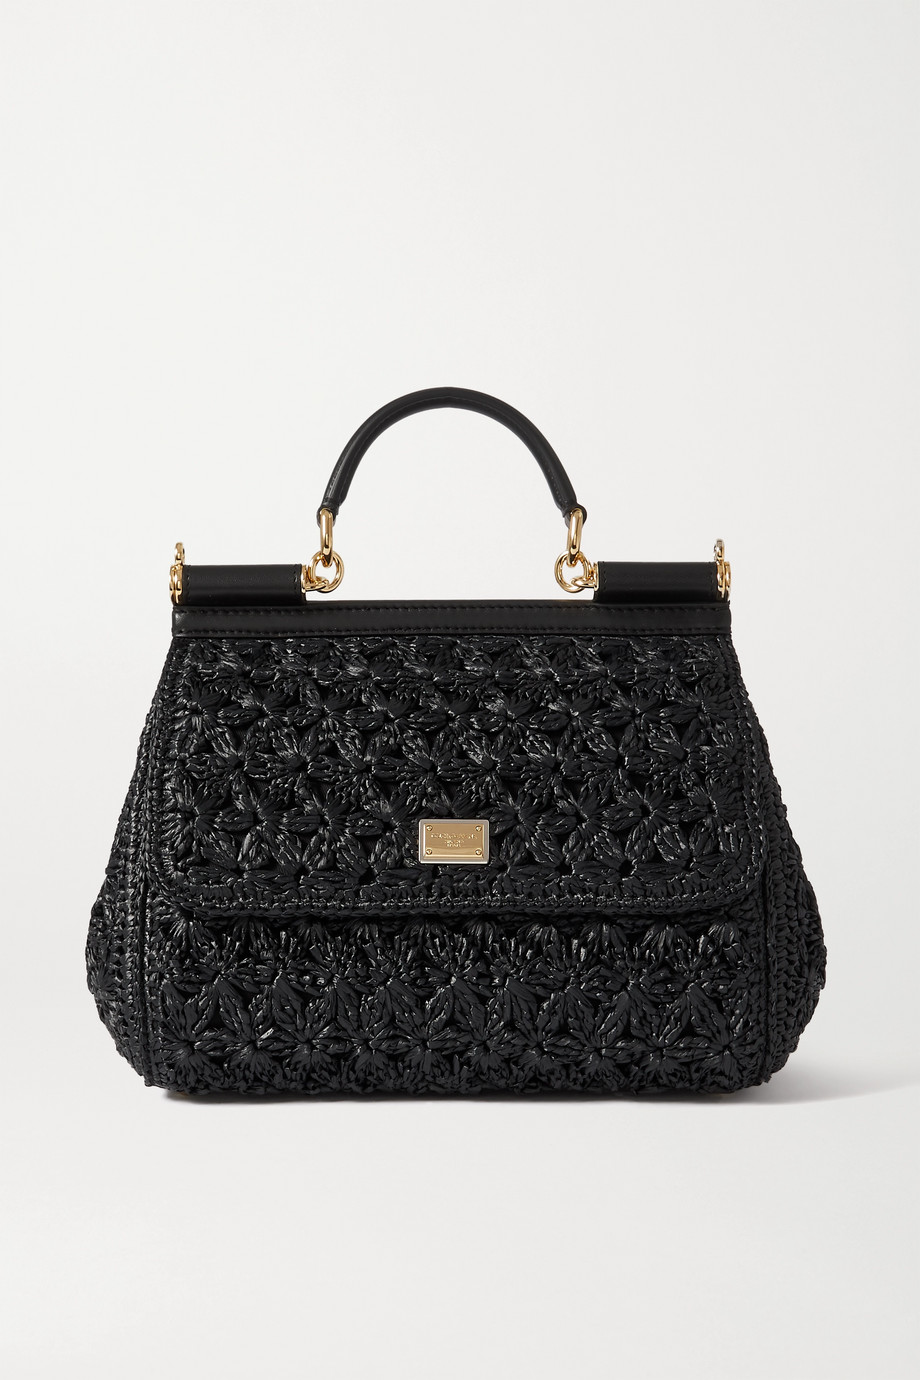 Dolce & Gabbana Sicily medium leather-trimmed woven raffia tote